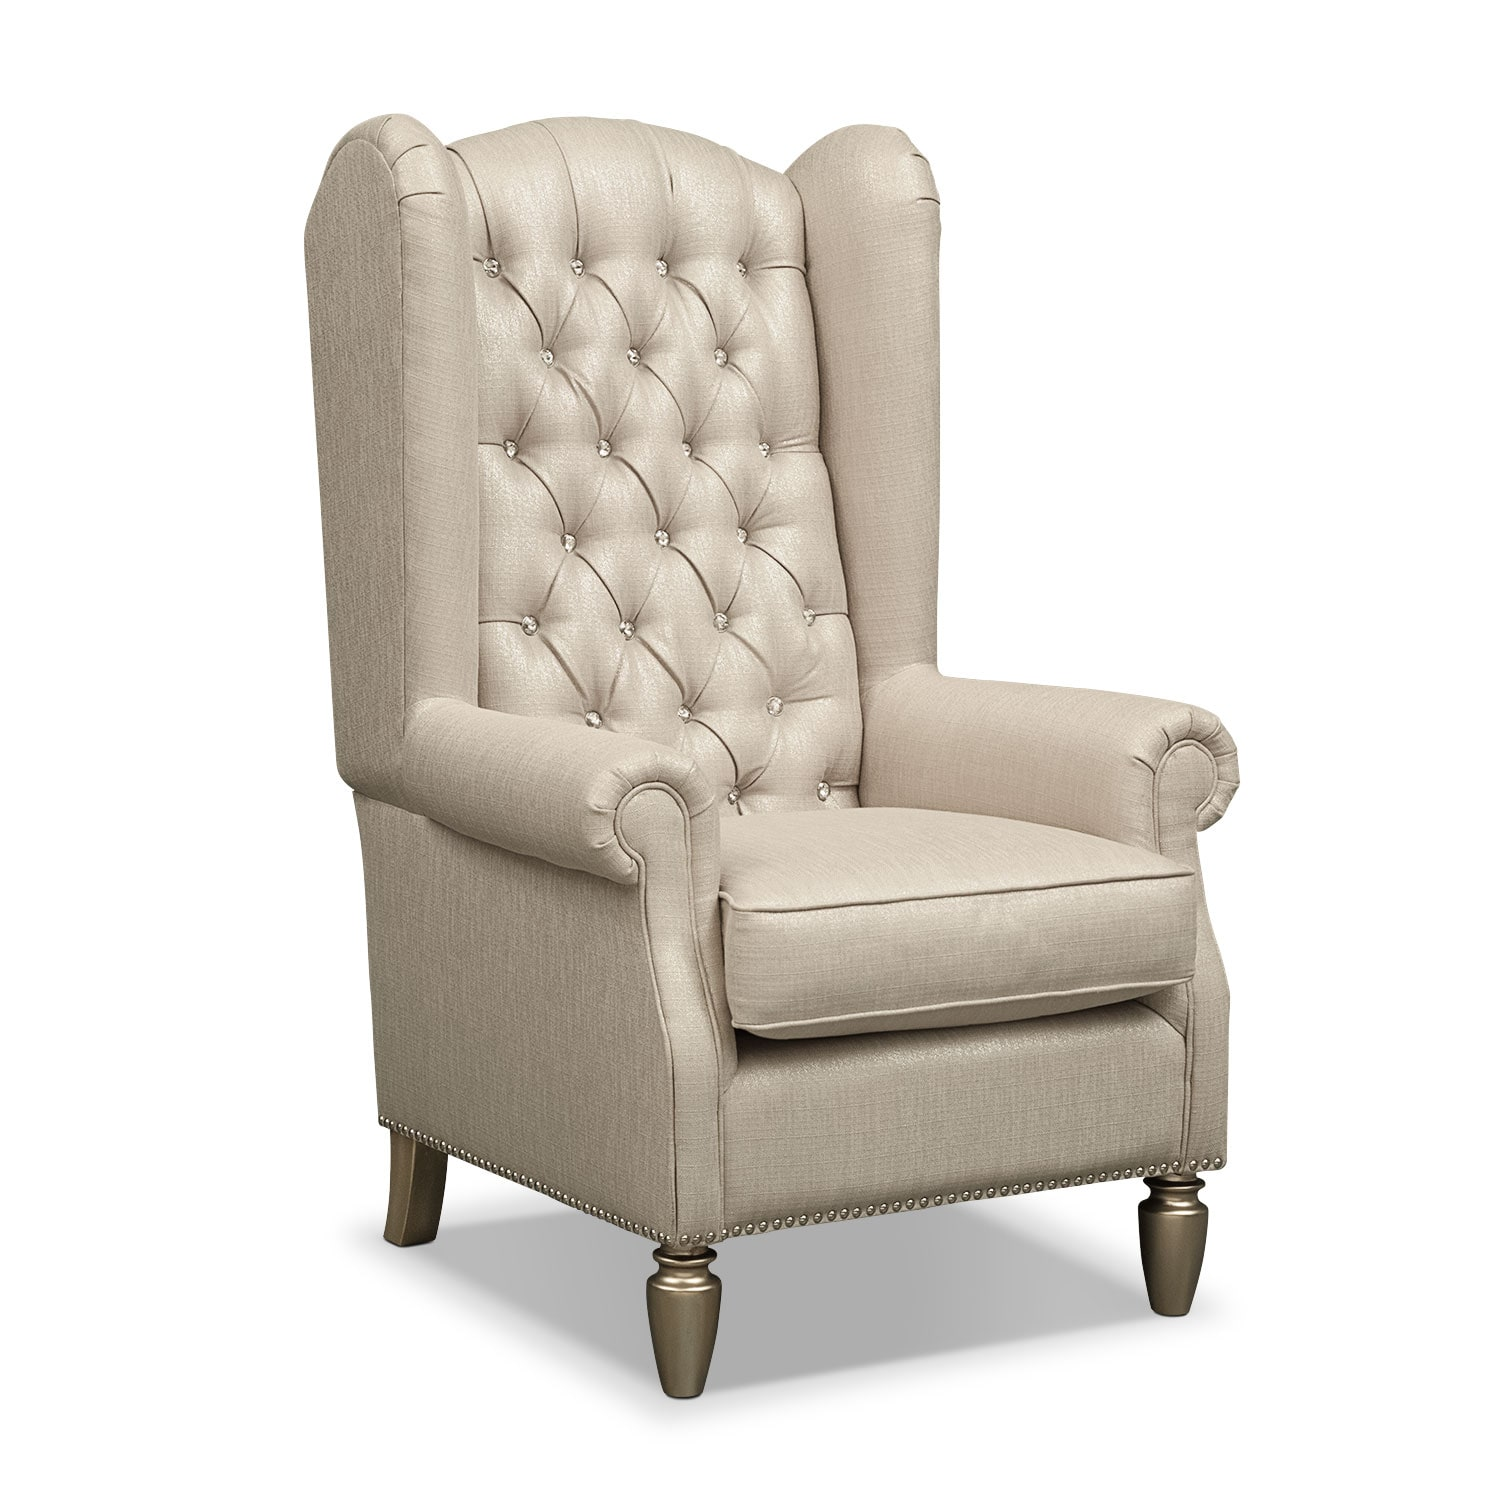 Bedroom Furniture - Cleo Accent Chair